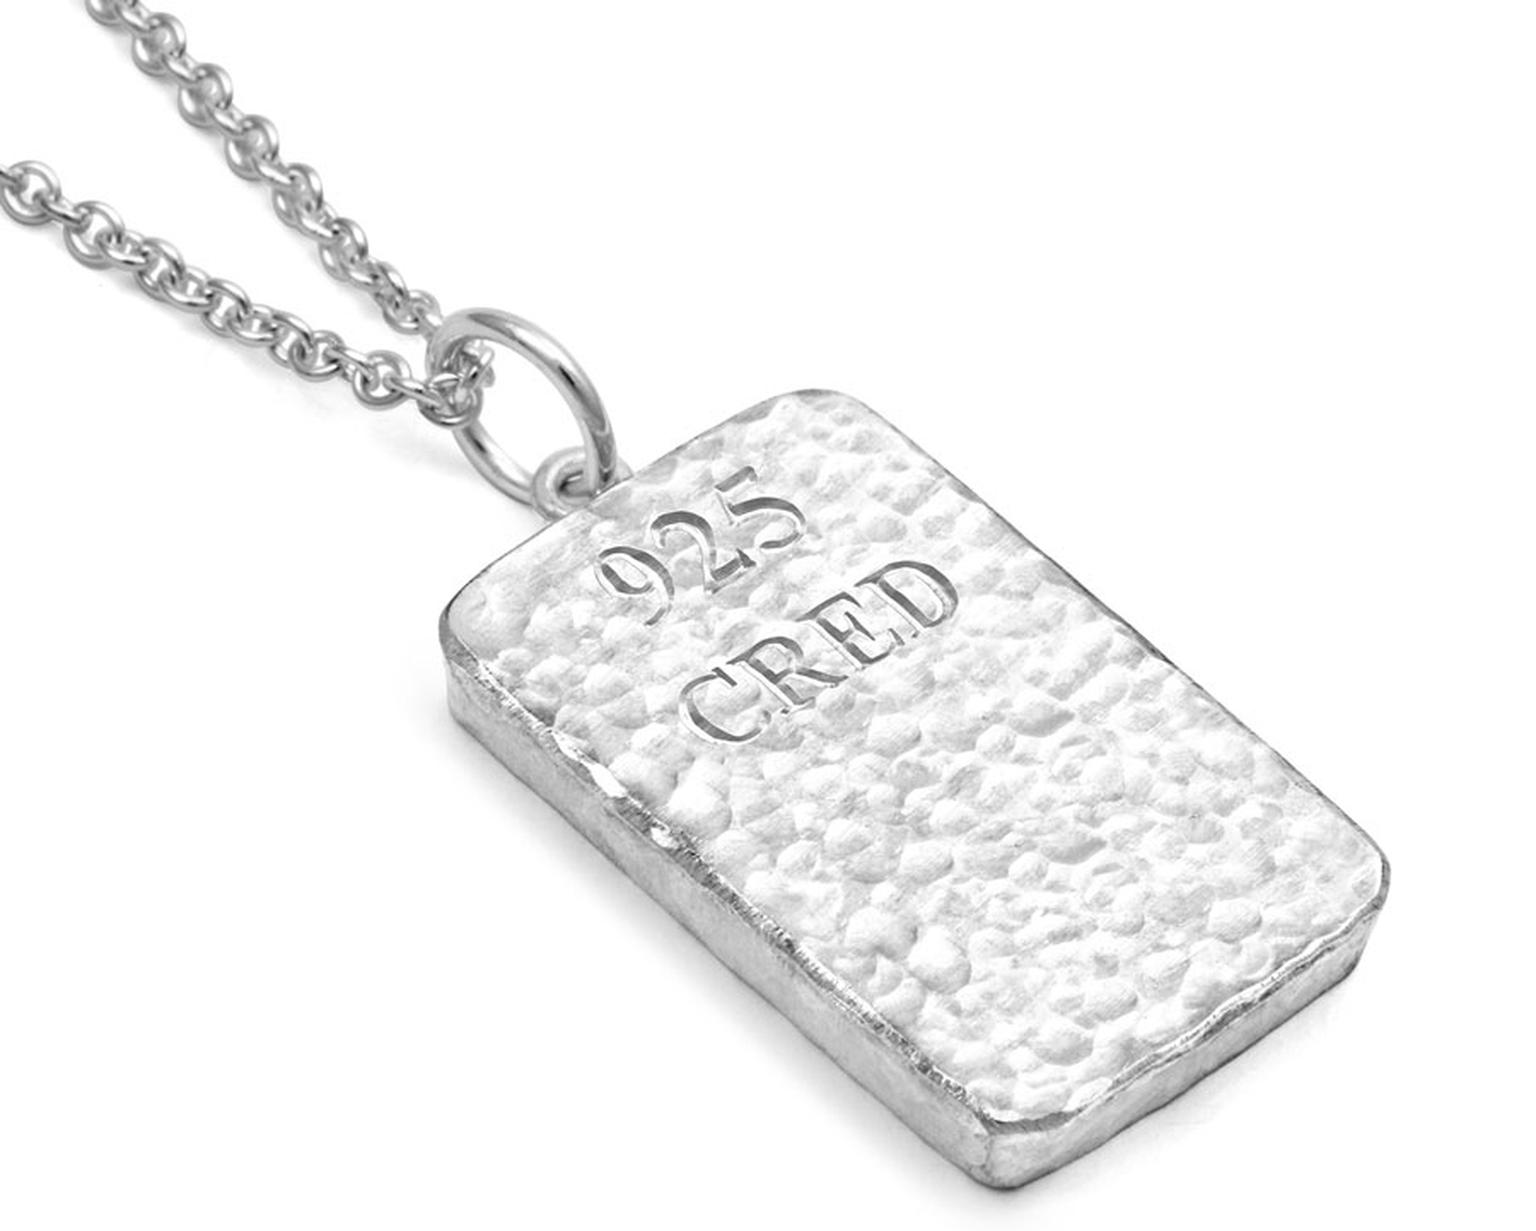 CRED Jewellery pendant: the world's first jewellery made from Fairtrade silver